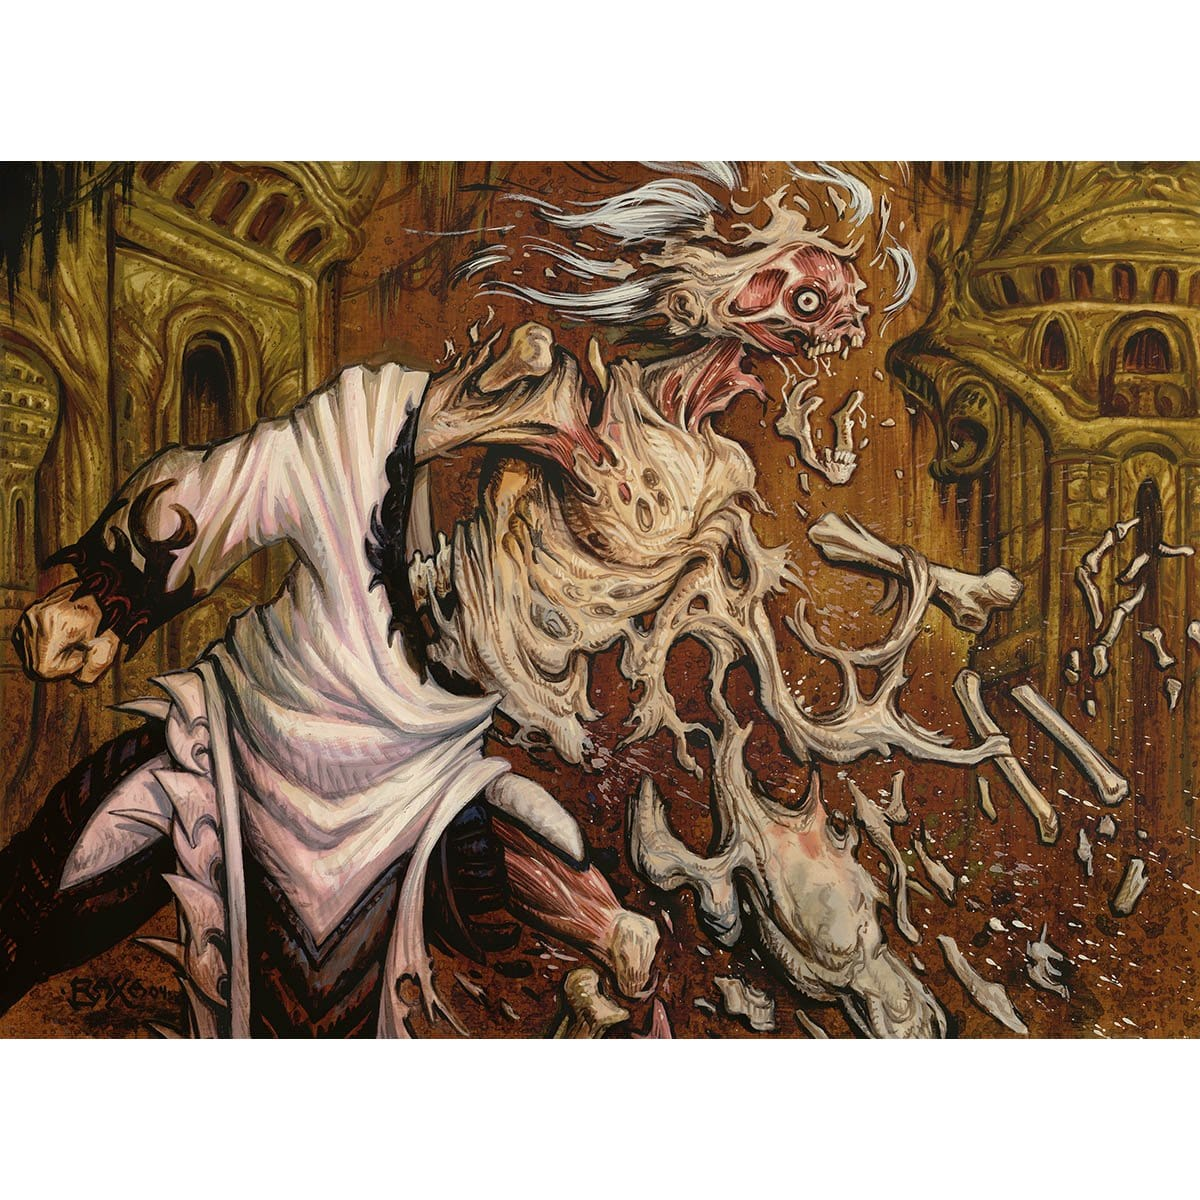 Rise from the Grave Print - Print - Original Magic Art - Accessories for Magic the Gathering and other card games